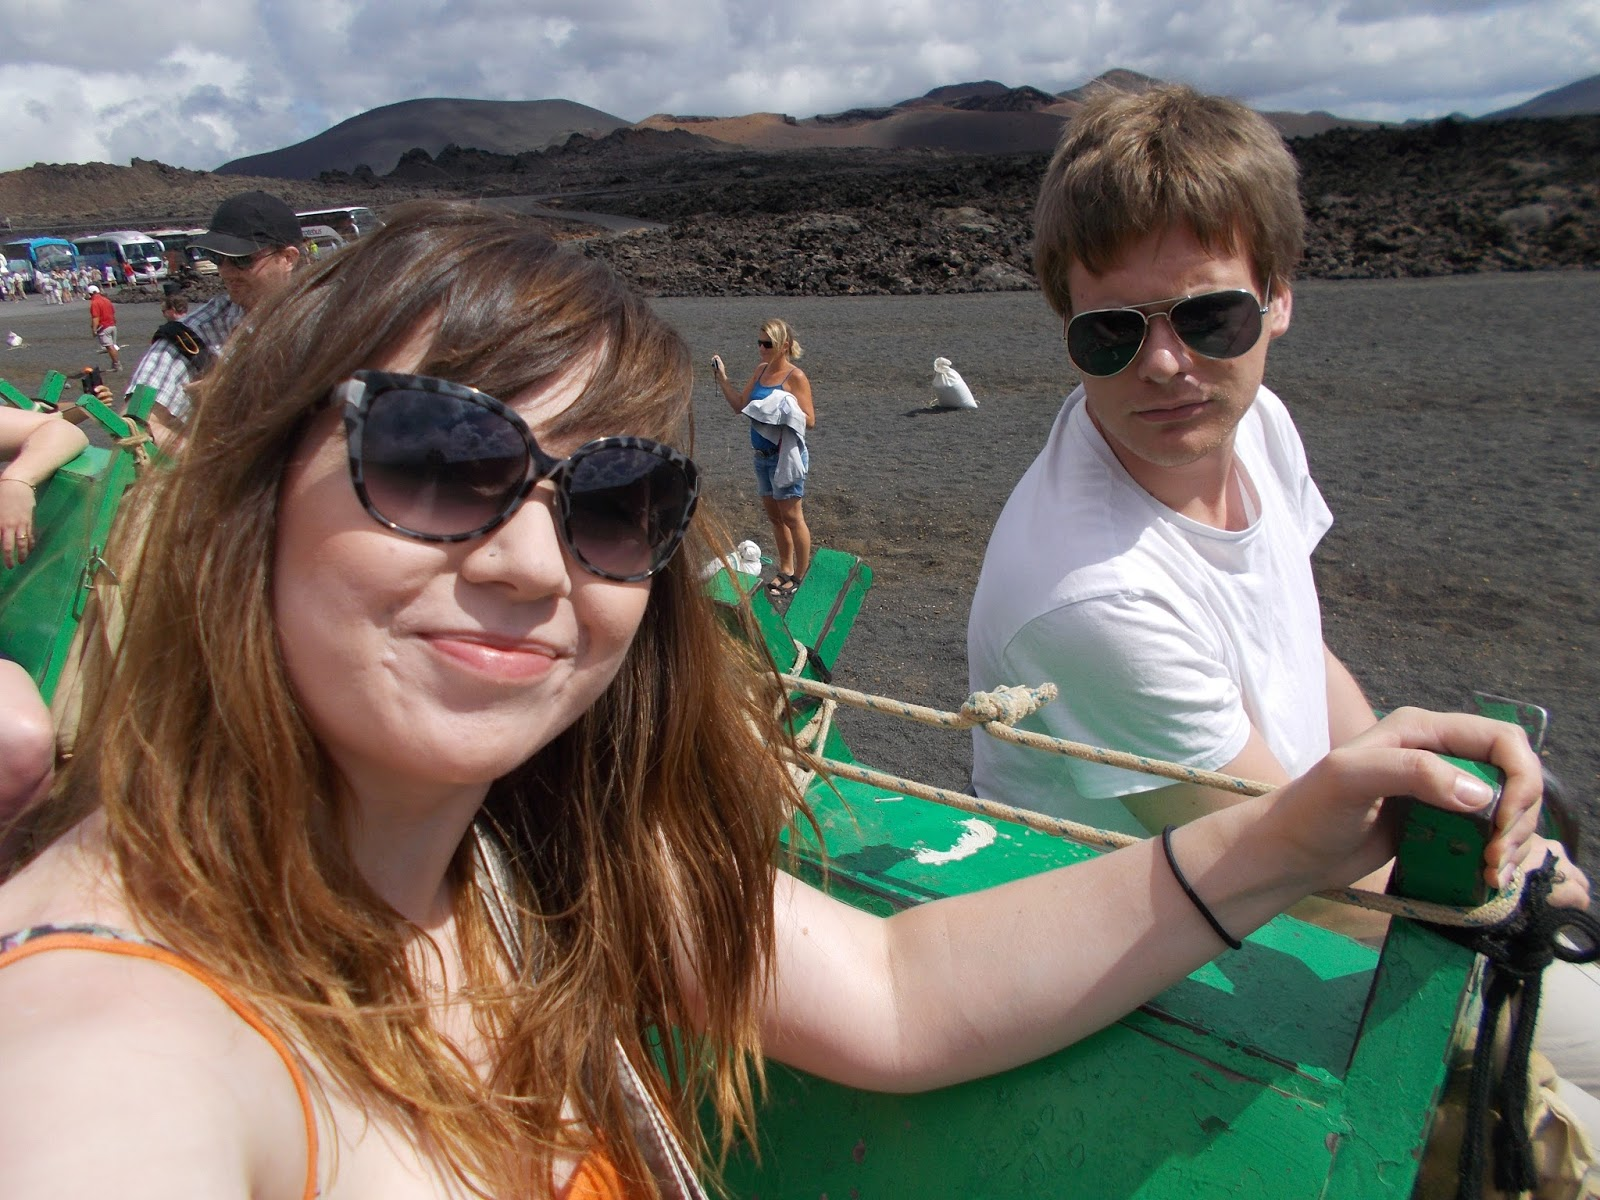 lebellelavie - Our holiday in Lanzarote